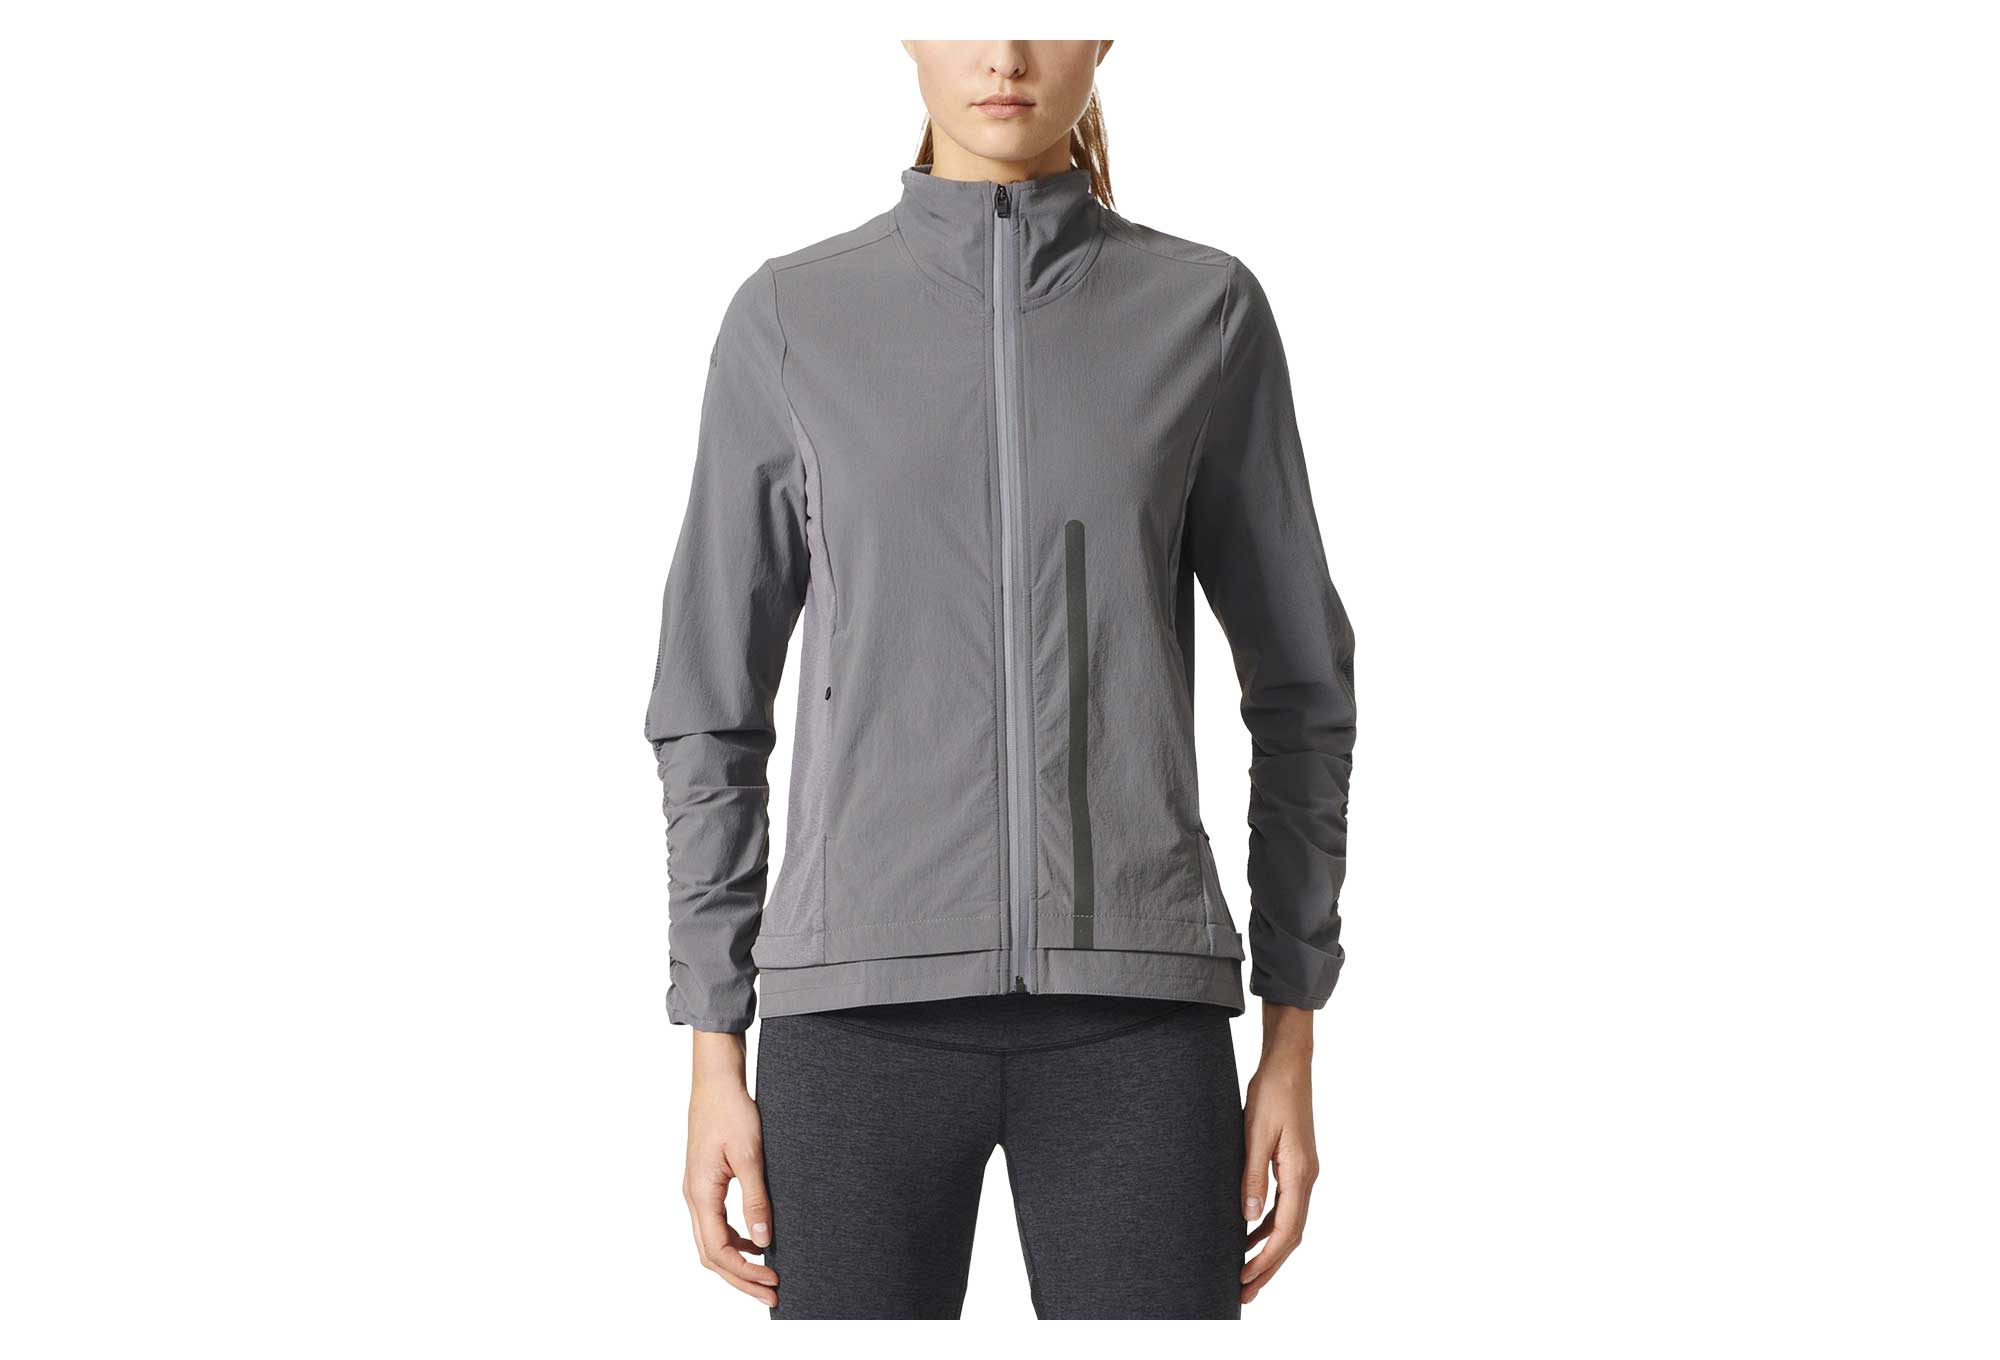 Veste Coupe Vent Impermeable Femme Adidas Running Ultra Energy Gris